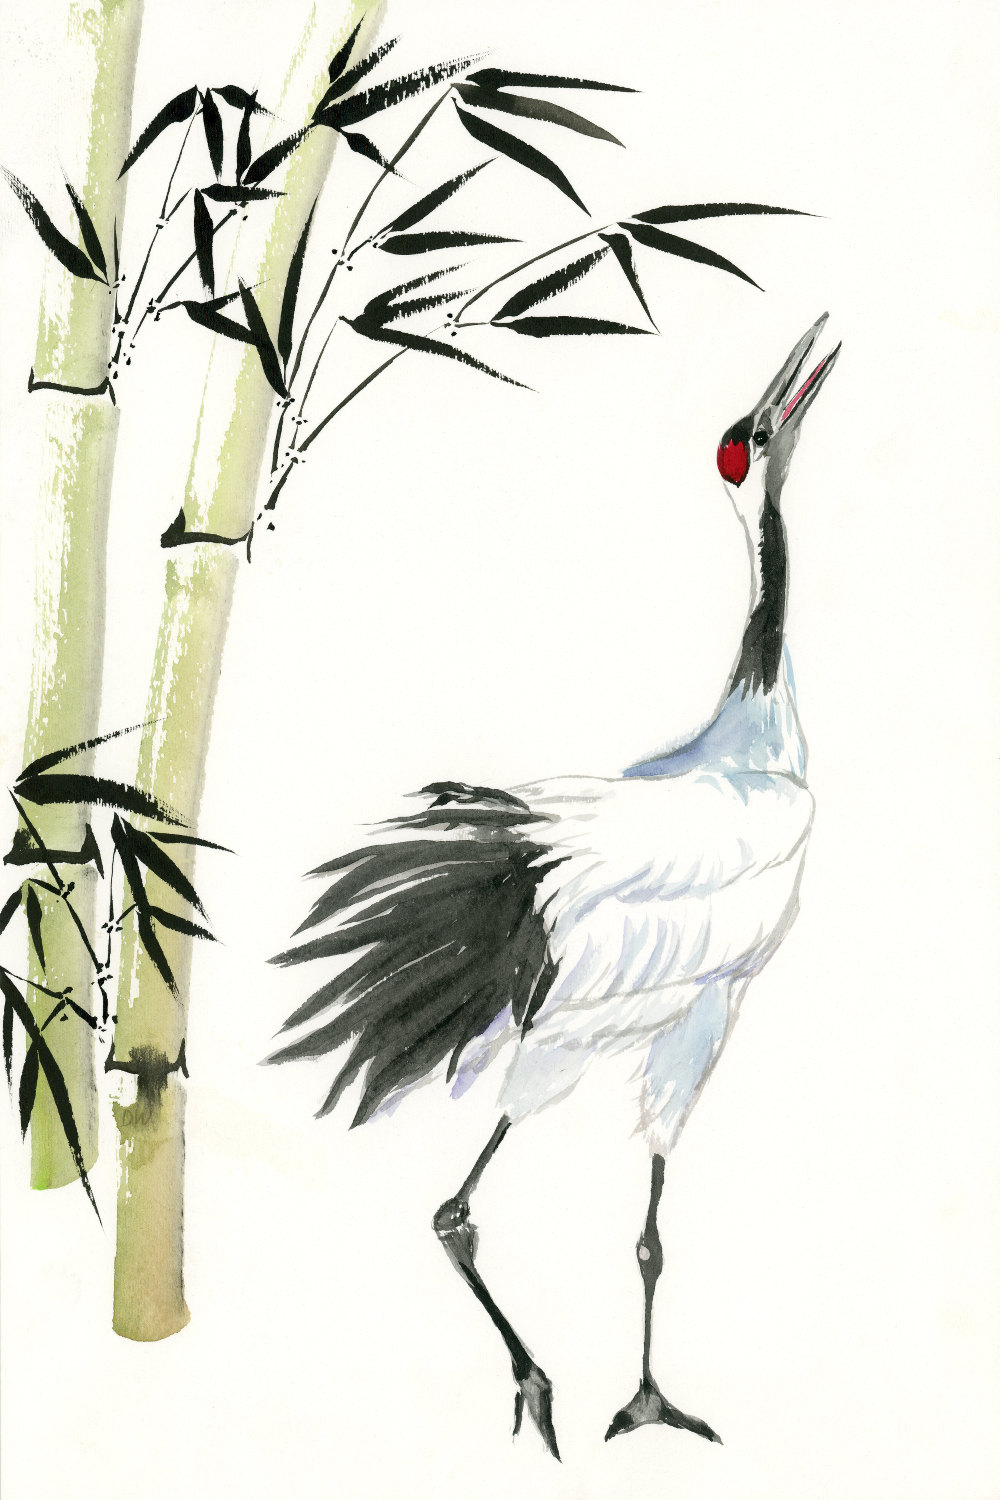 1000x1500 Fine Art Print Japanese Crane And Bamboo, Watercolor Painting